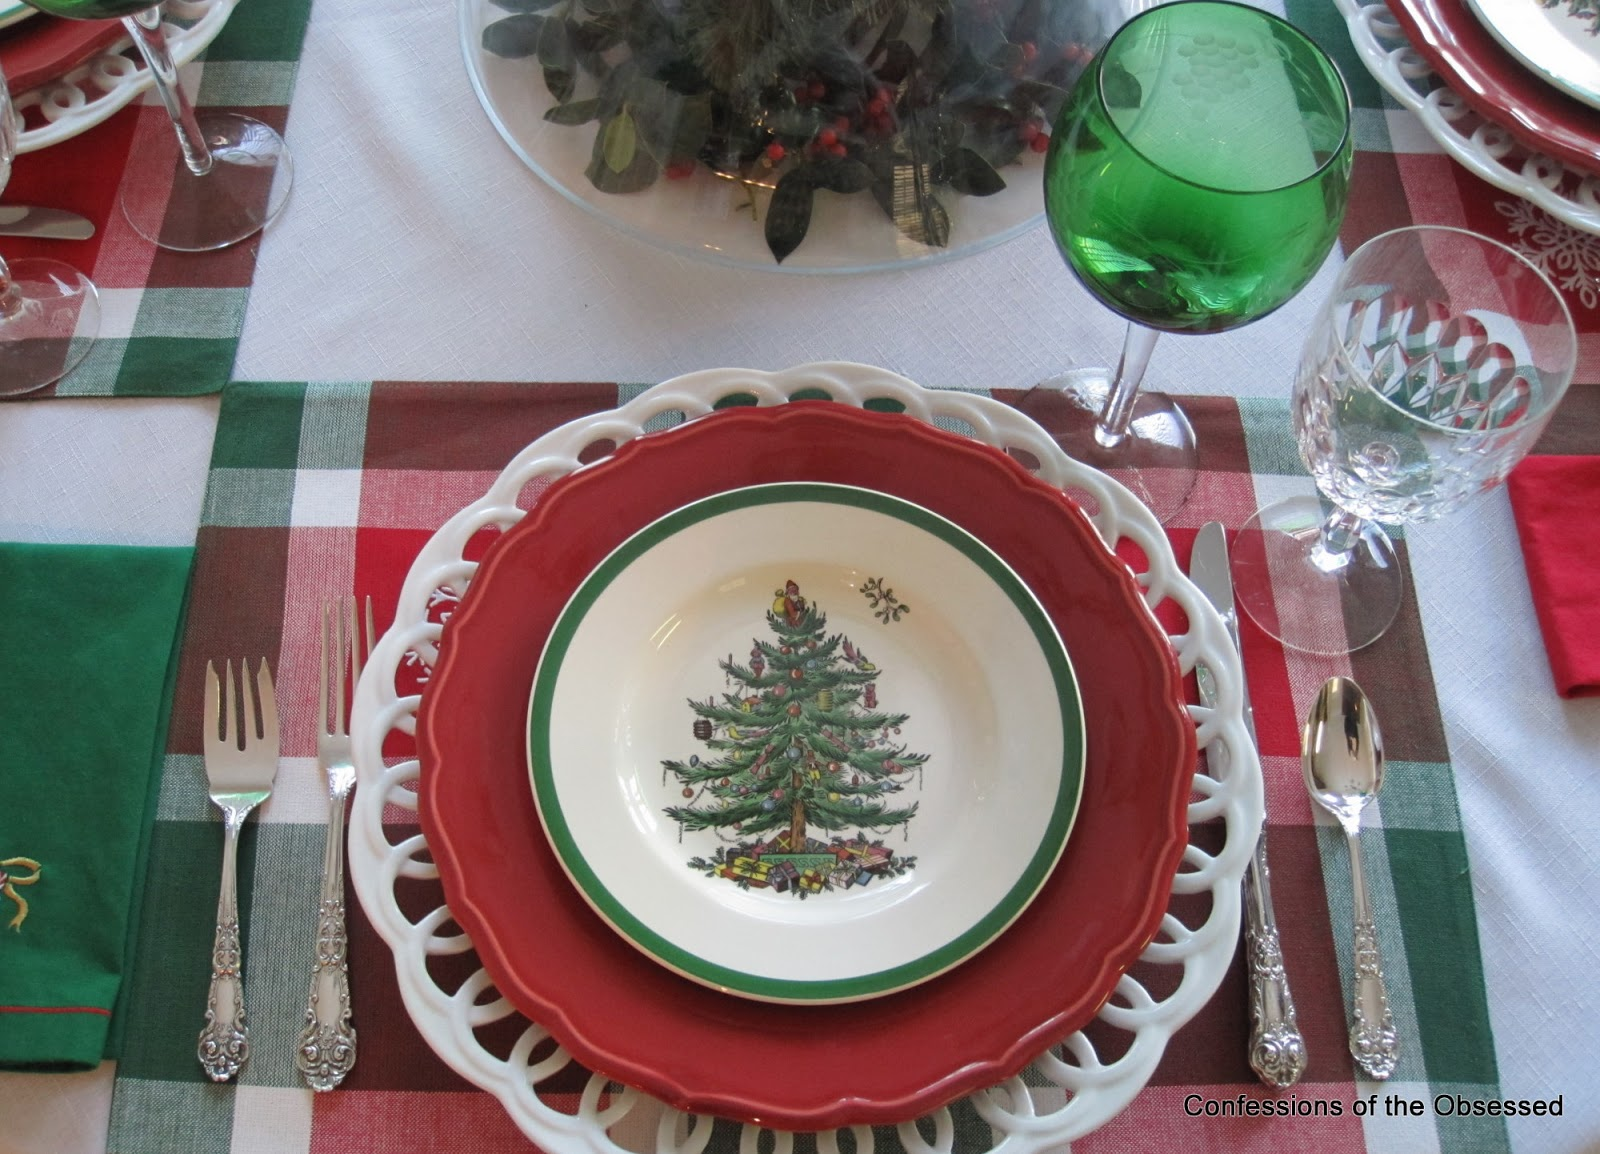 On top of the placemats I used a white charger from Maryland china a red Biltmore \u201cLouisa\u201d dinner plate and a \u201cChristmas Tree\u201d salad plate. & Confessions of the Obsessed: Obsession Number Five